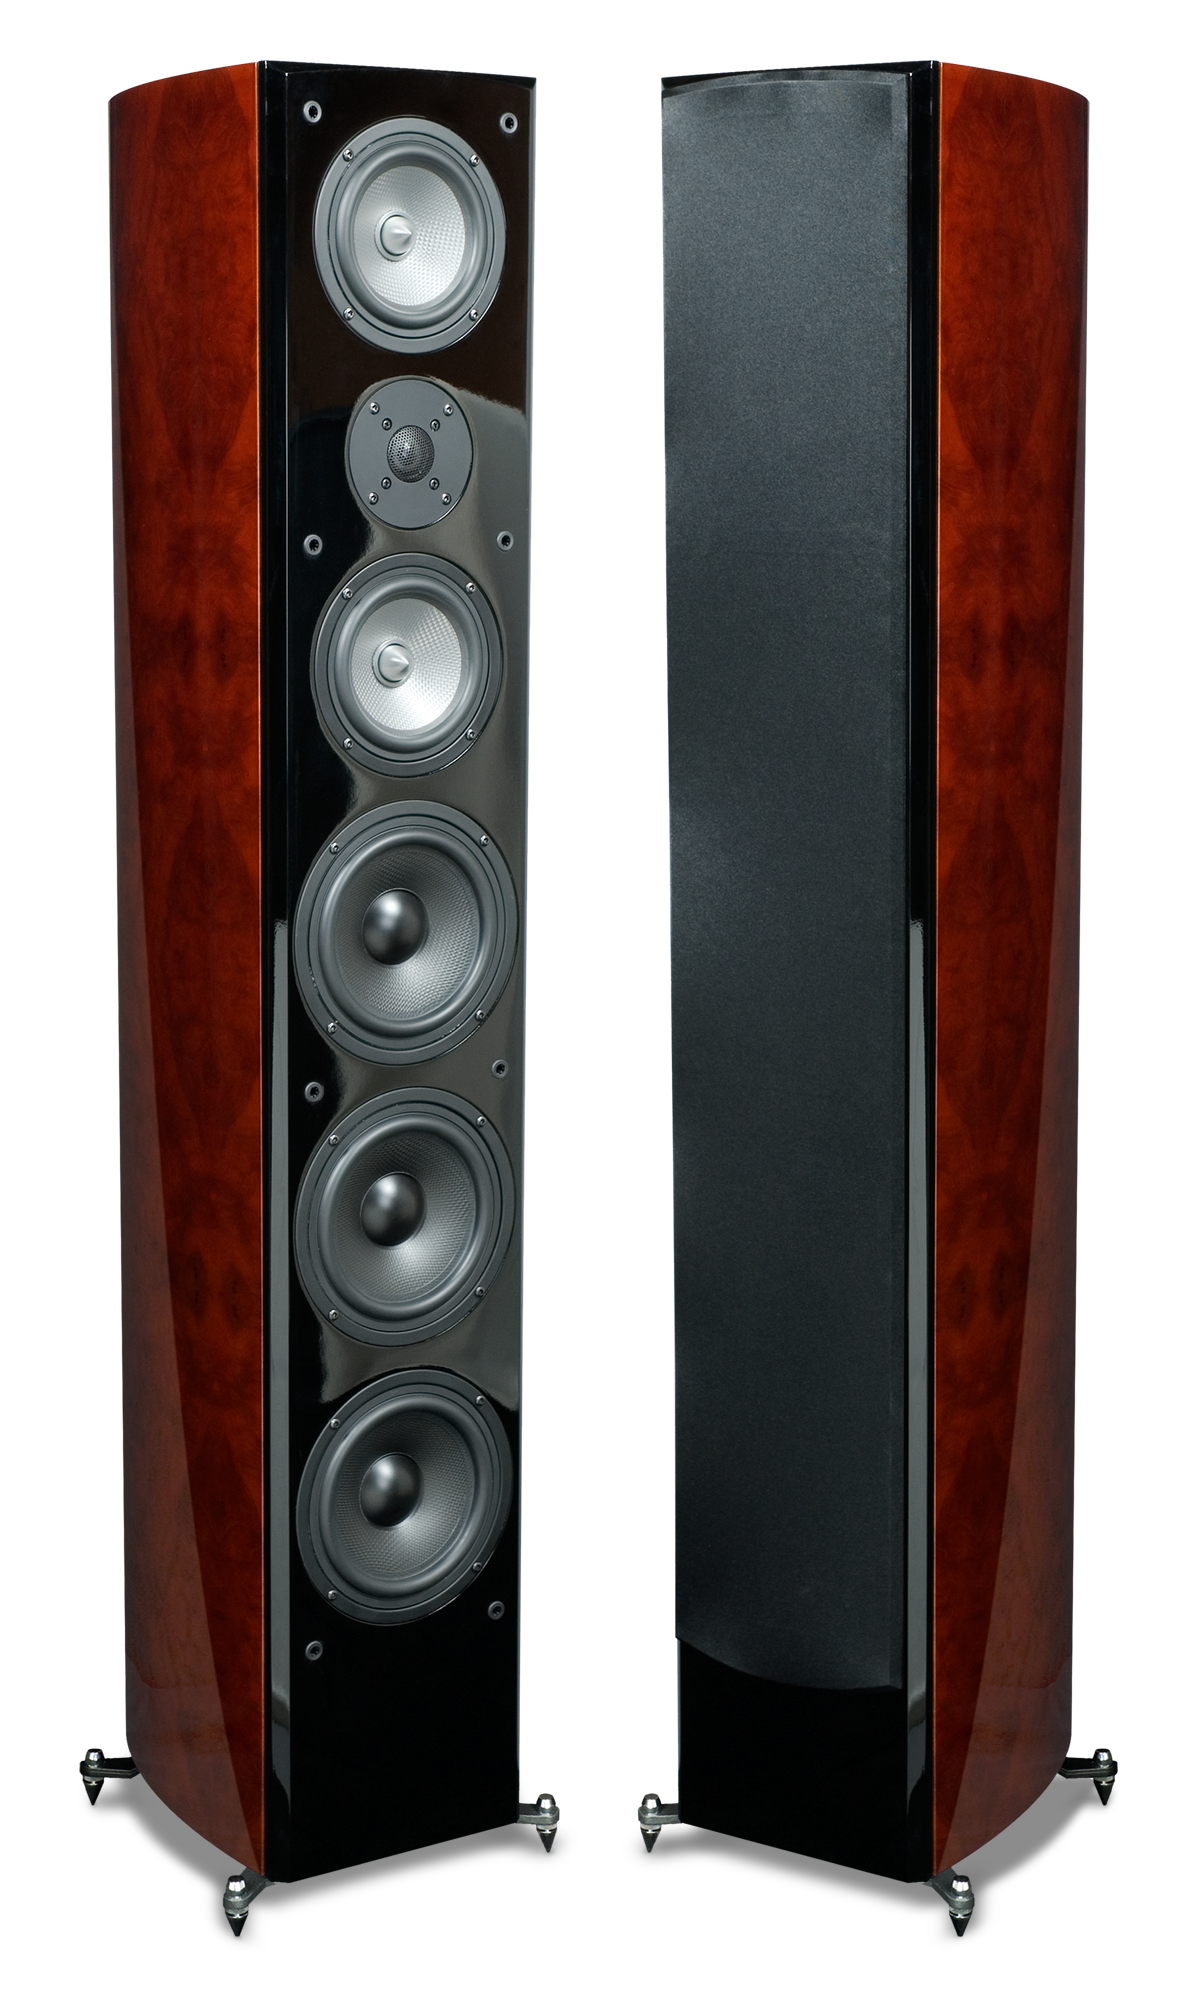 rbh sound r55ti tower speakers. Black Bedroom Furniture Sets. Home Design Ideas